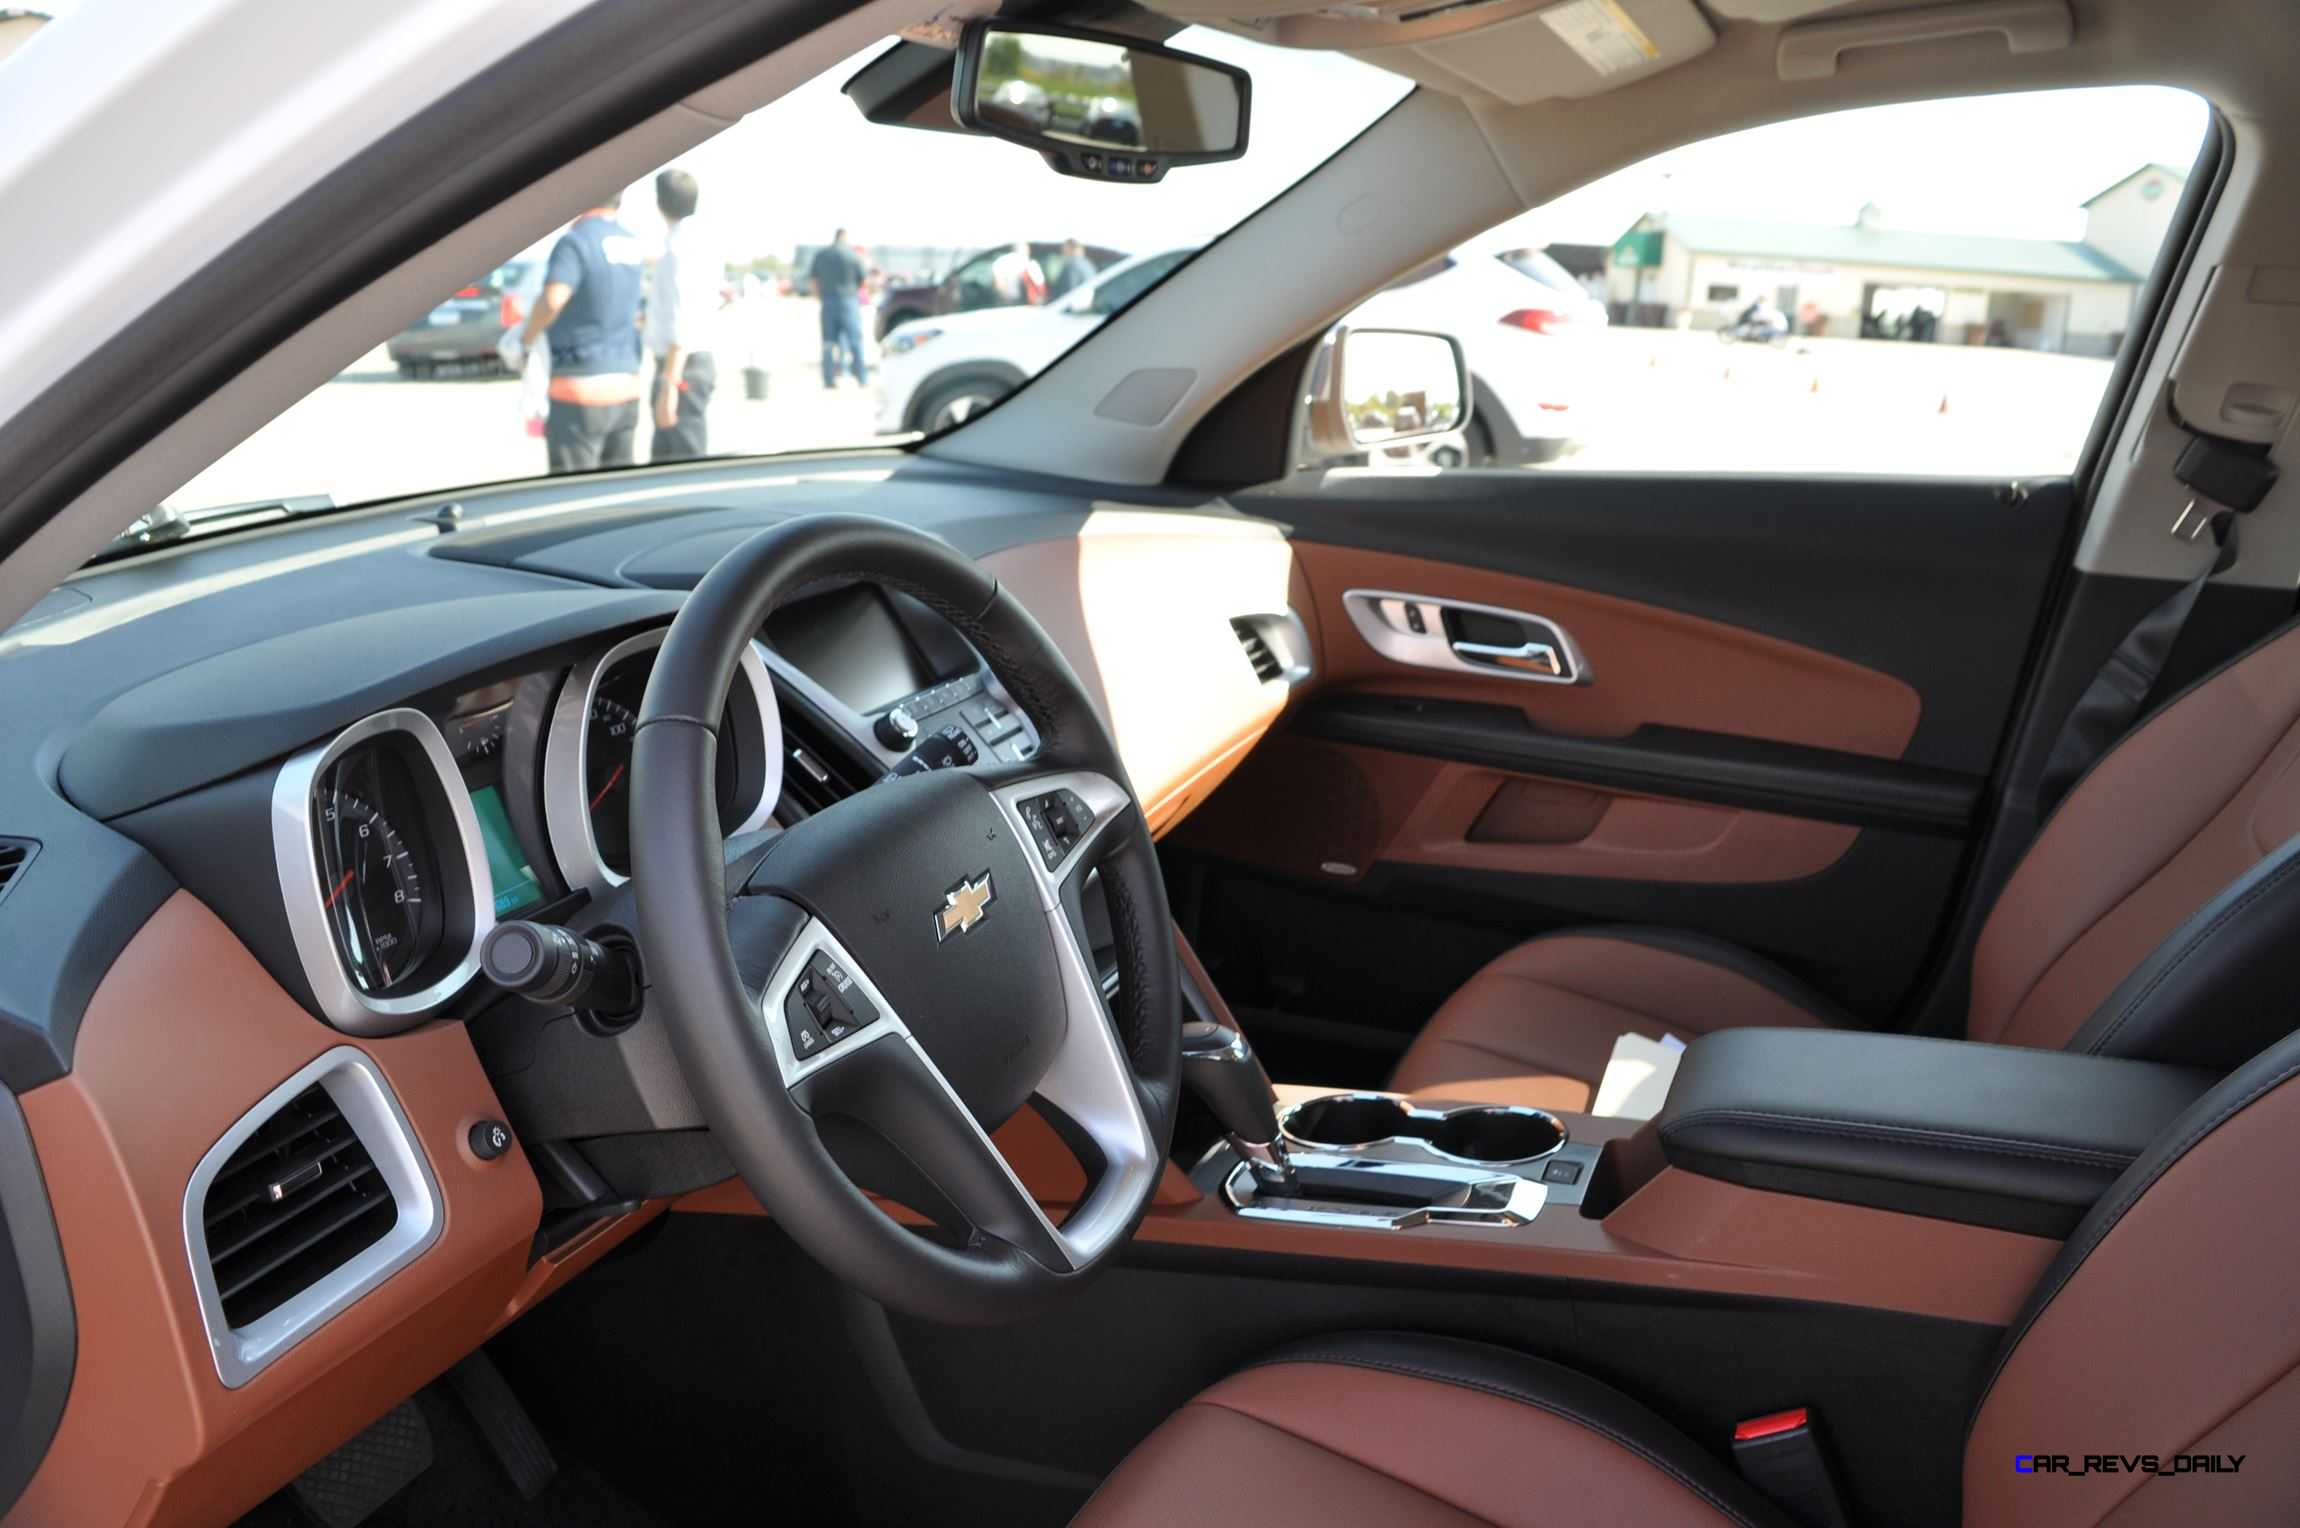 2016 Chevrolet Equinox Ltz Interior Saddle Brown 2